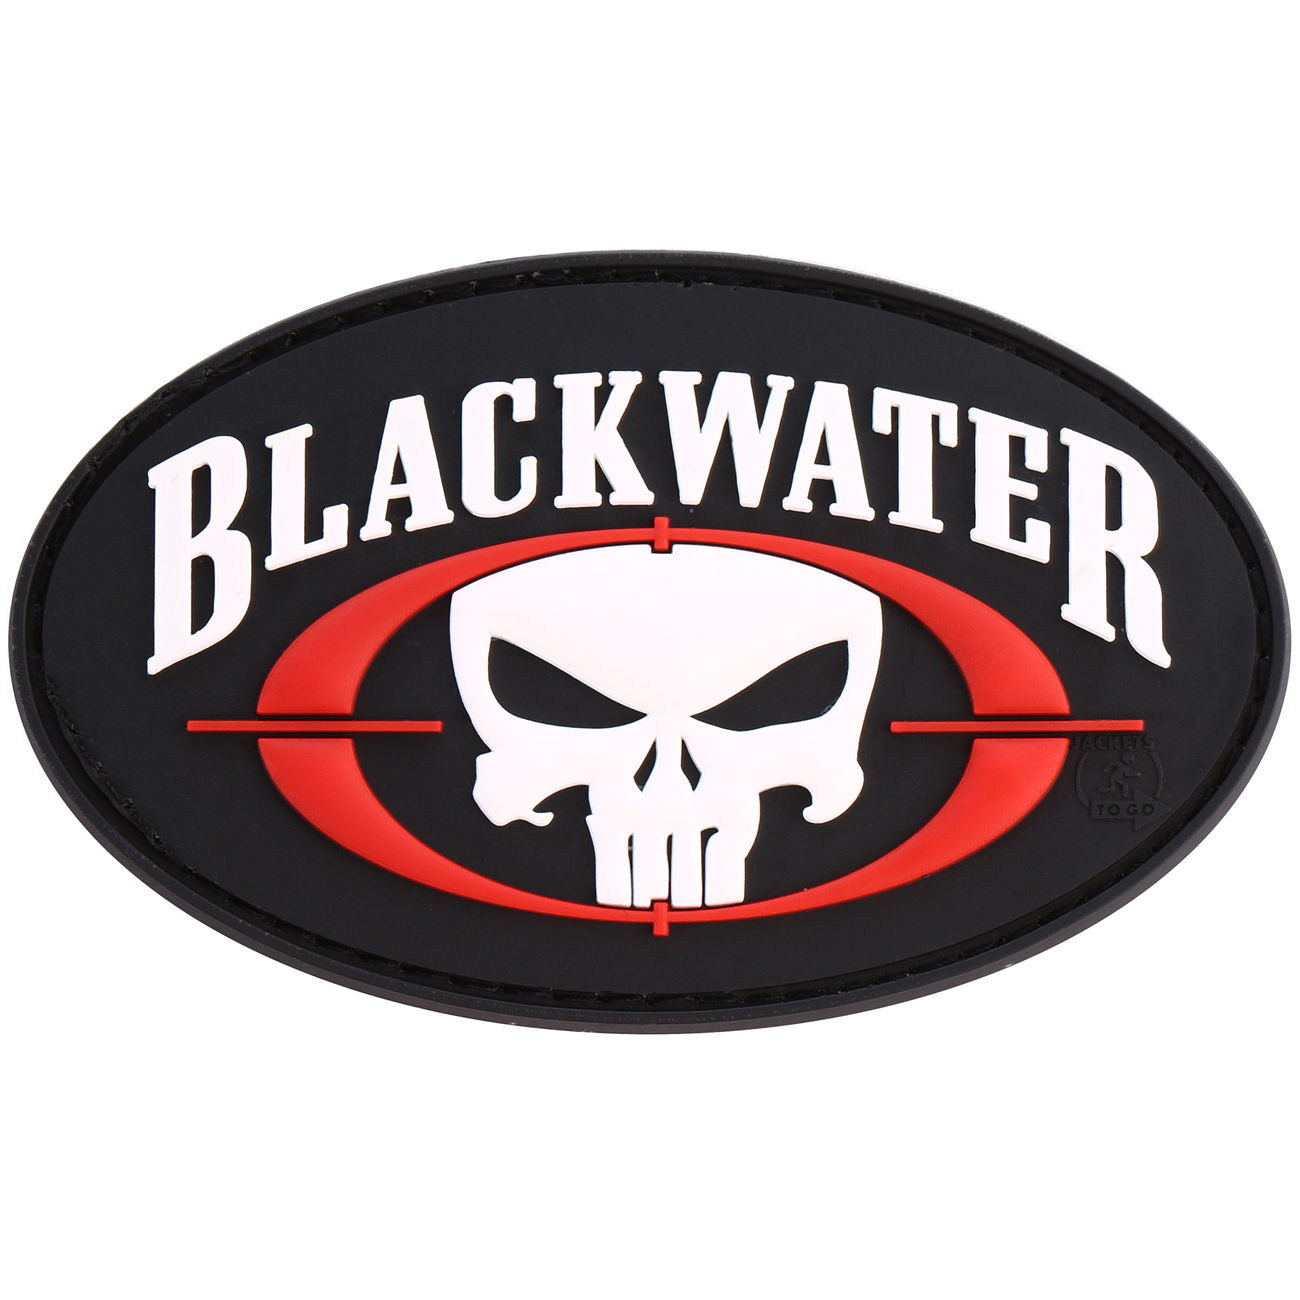 JTG 3D Rubber Patch BWP Blackwater Punisher 0